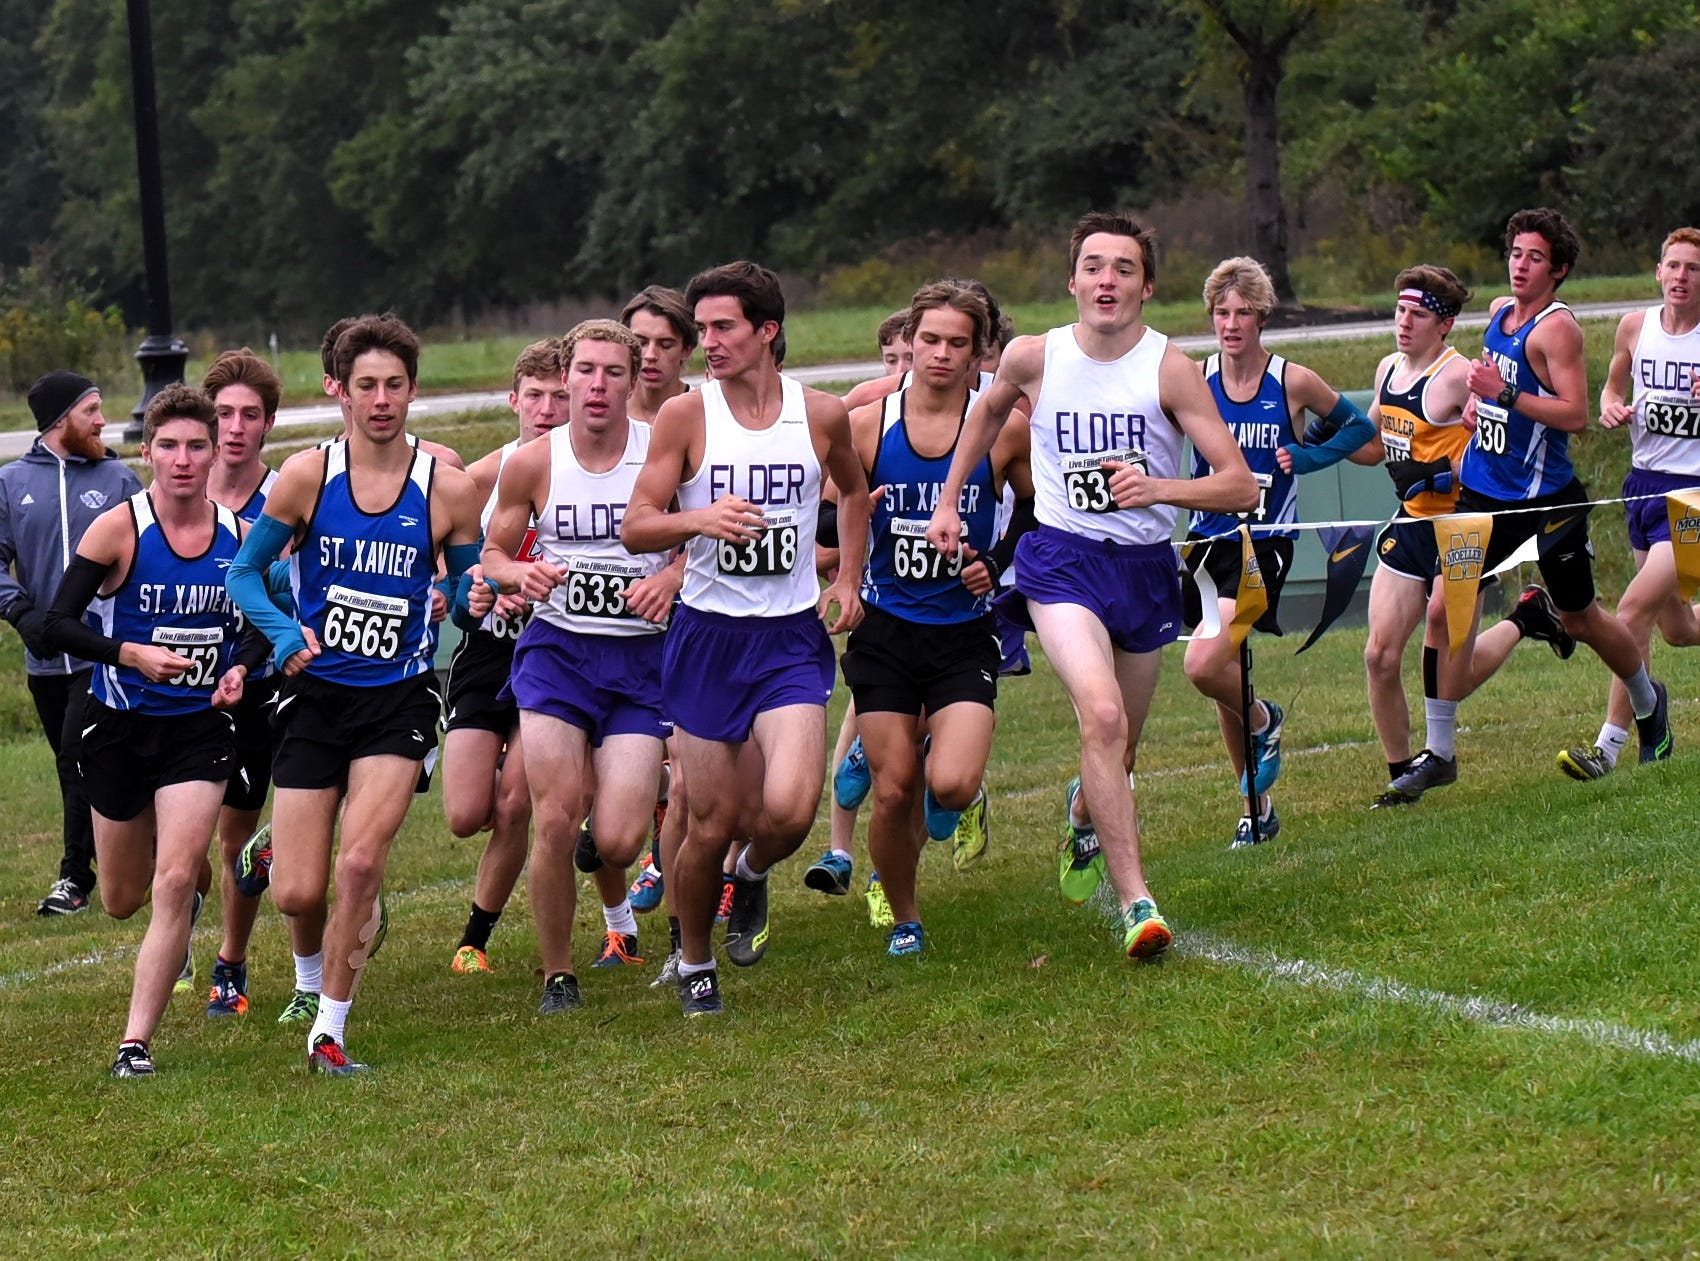 Elder and St. Xavier lead runners to the 1 mile mark at the 2018 GCL/GGCL Cross Country Championships, October 13, 2018.